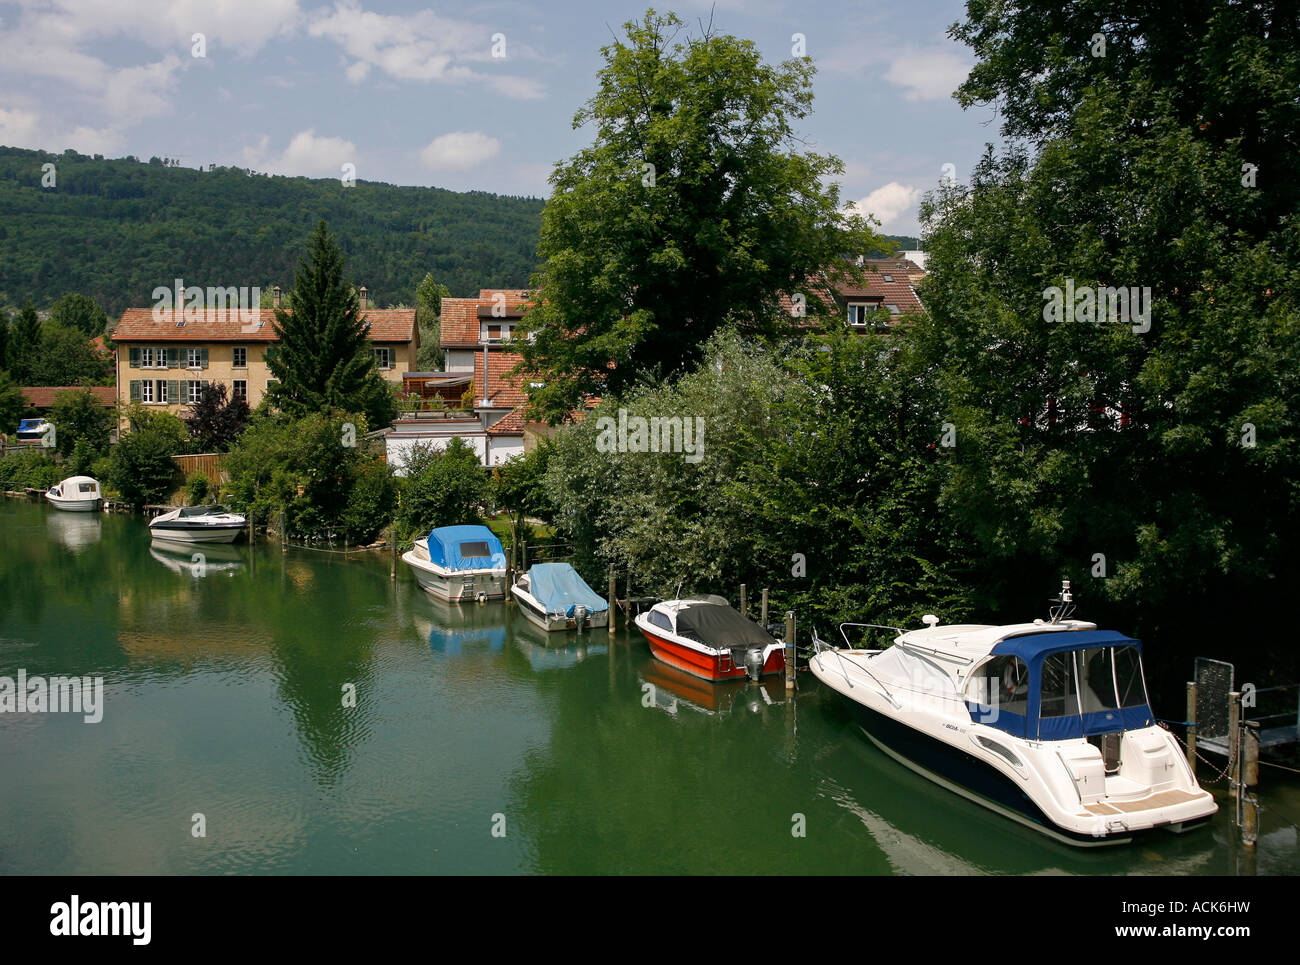 Biel Bienne Switzerland Europe - Stock Image